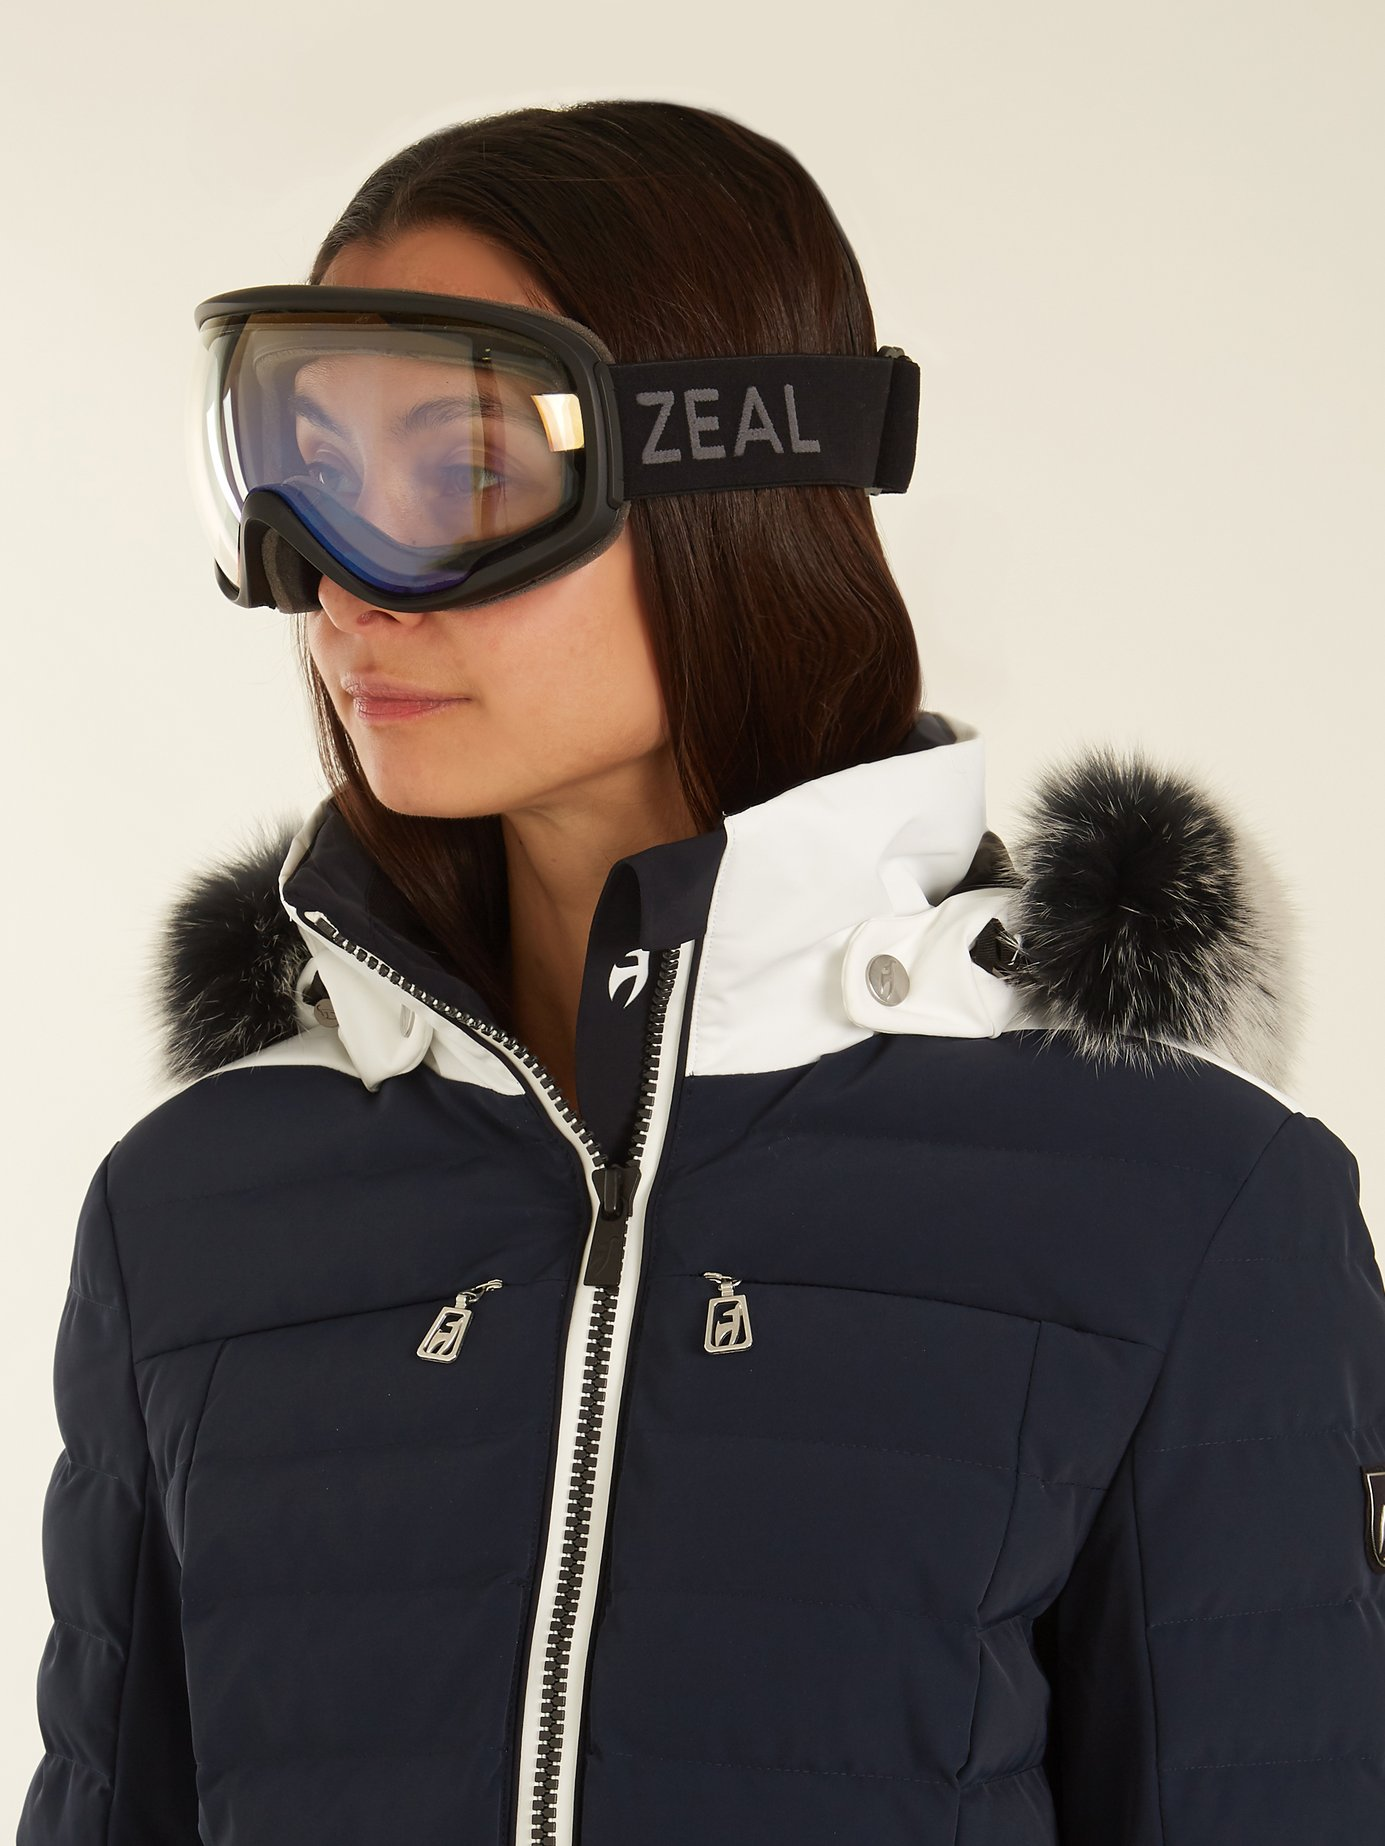 ZEAL OPTICSForecast ski gogglesWas £166 Now £116 - With polarised lenses that change with the weather, these are the perfect goggles for all conditions! Function and sleek so they will last for years to come.